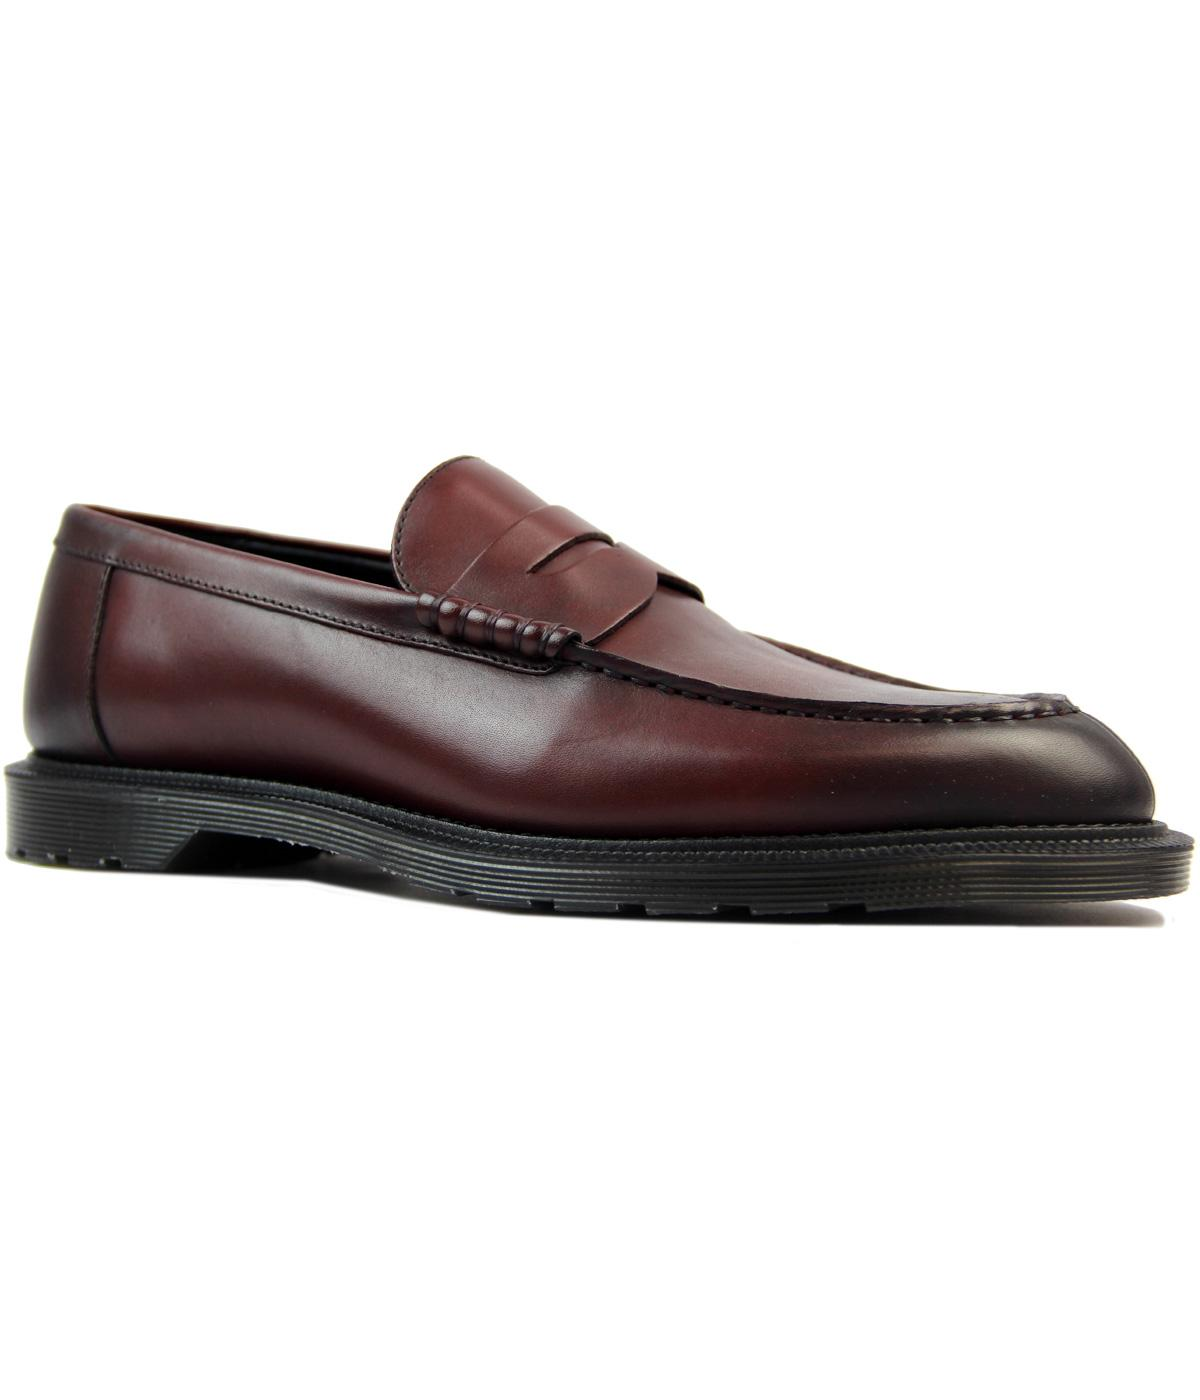 Penton DR MARTENS Retro Mod Leather Bar Loafers